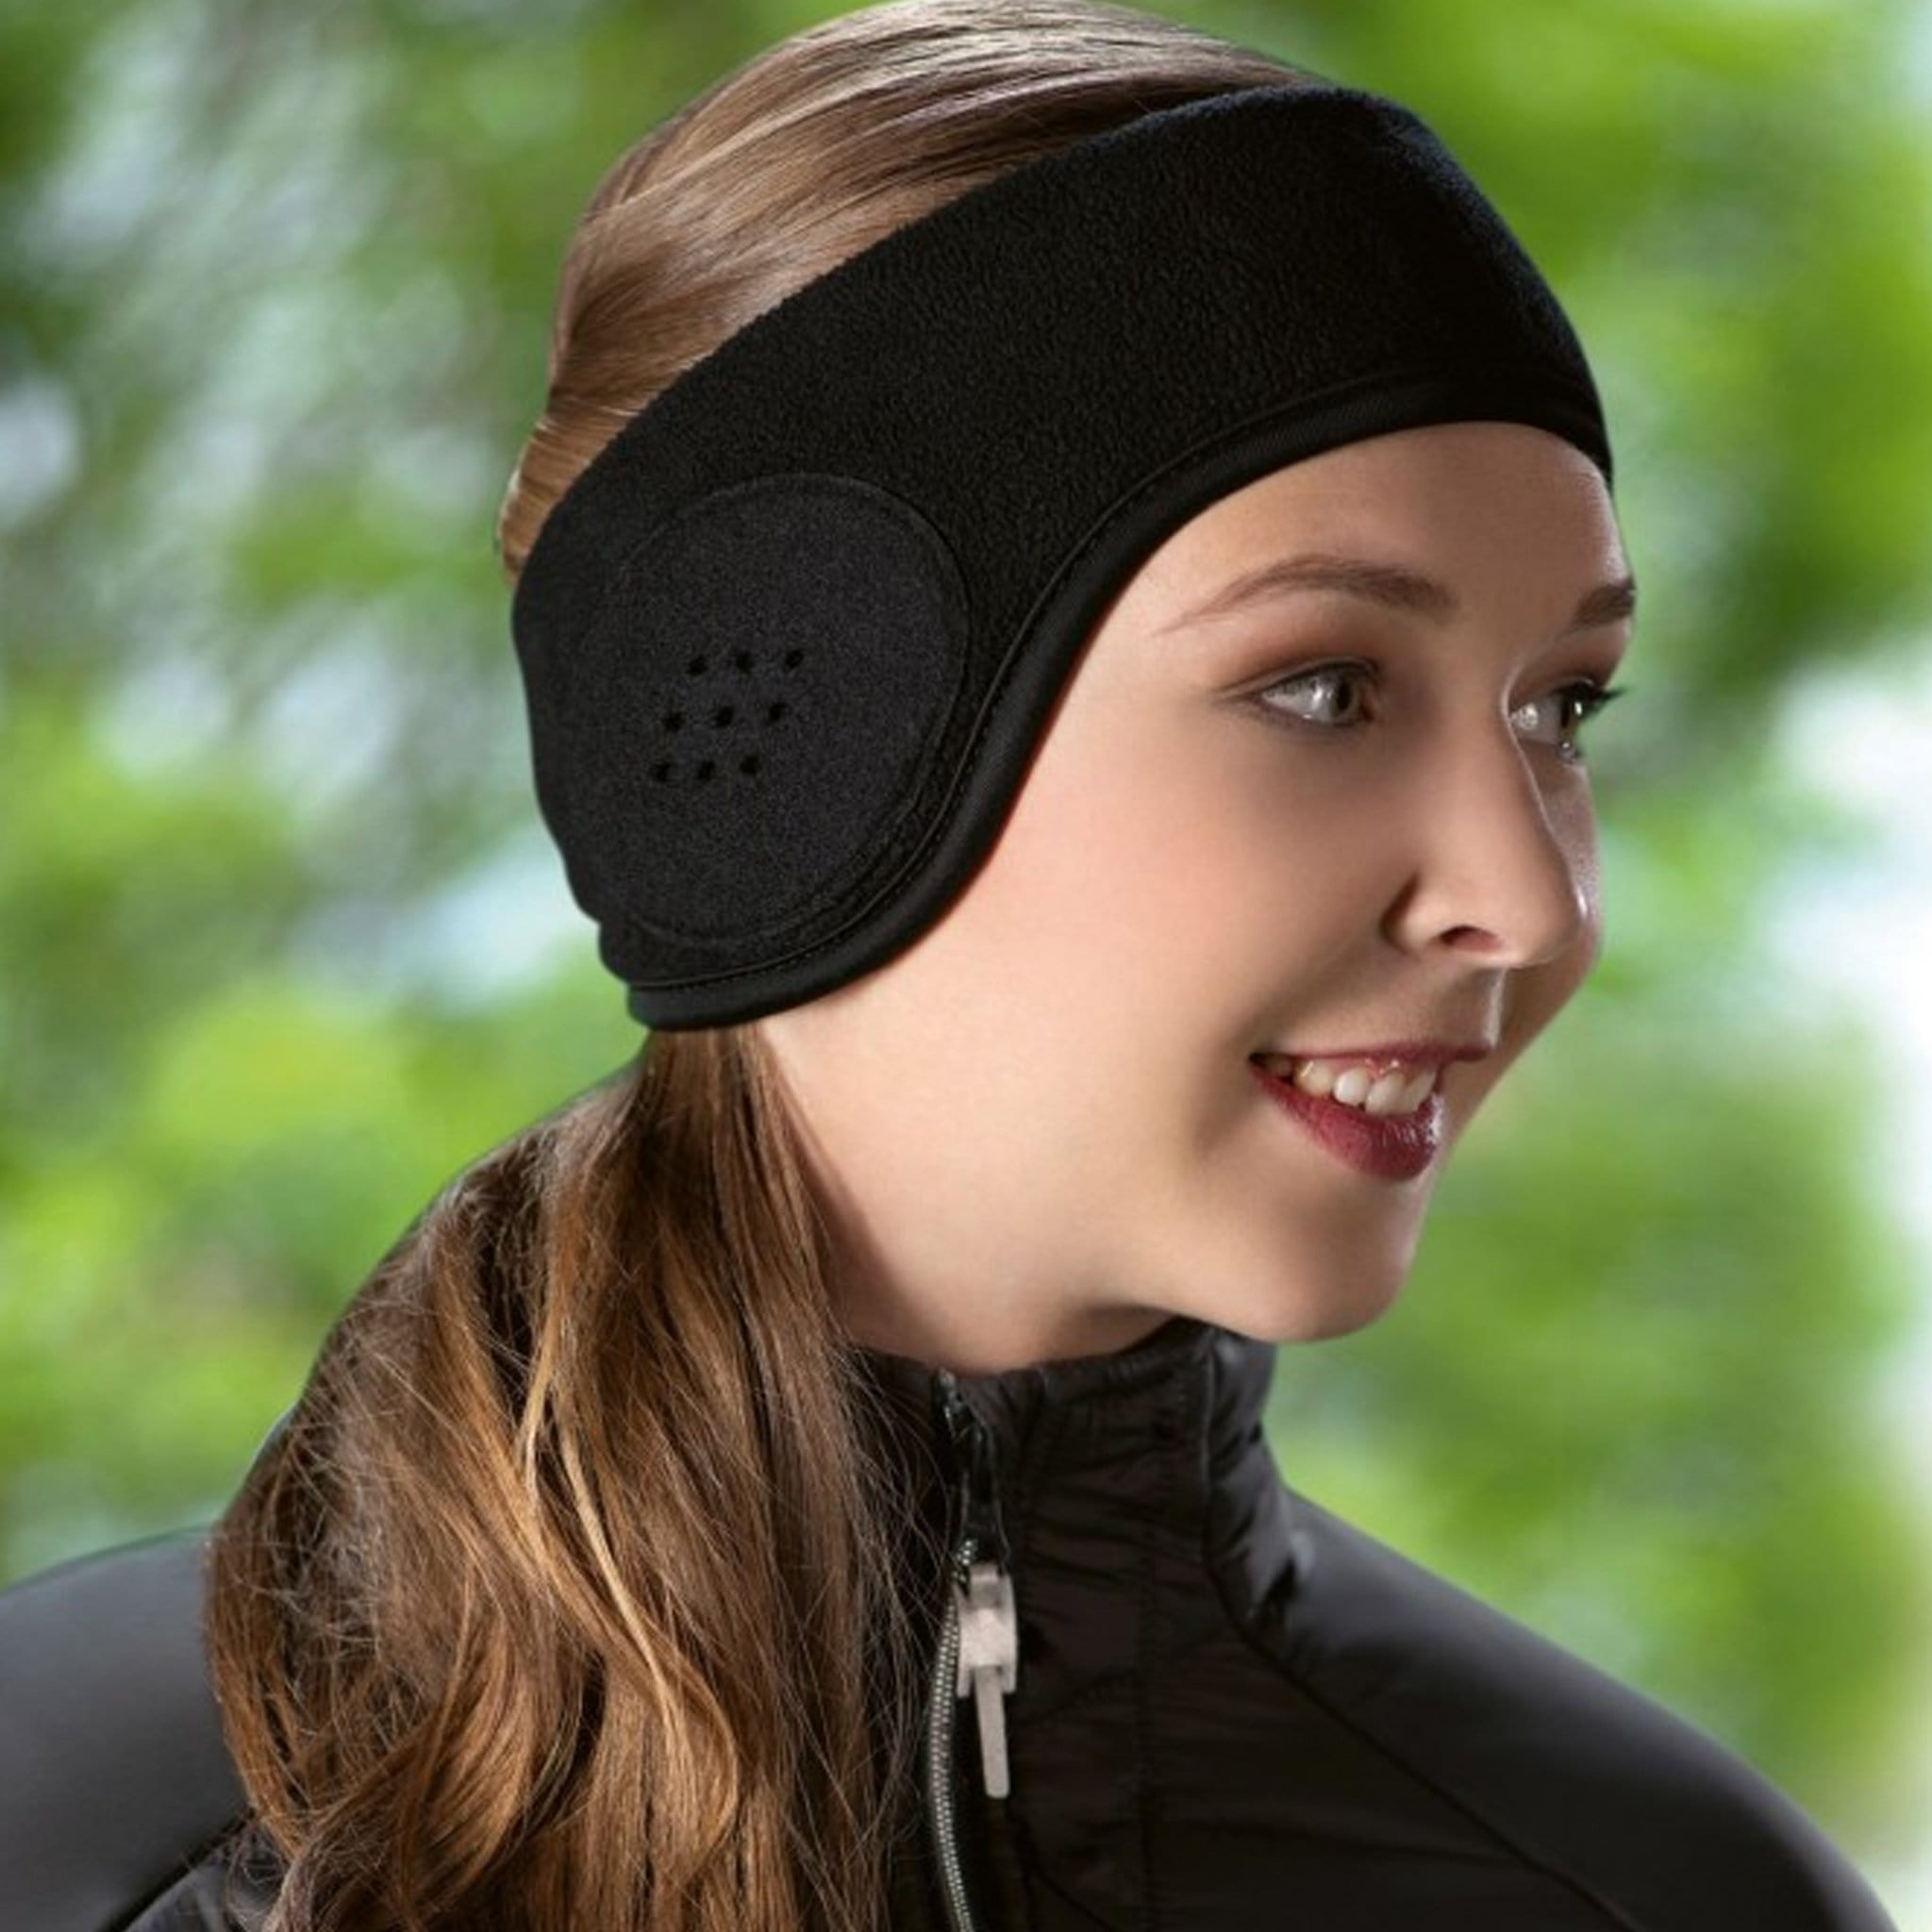 HKM Fleece Ear Warmers Black 2649